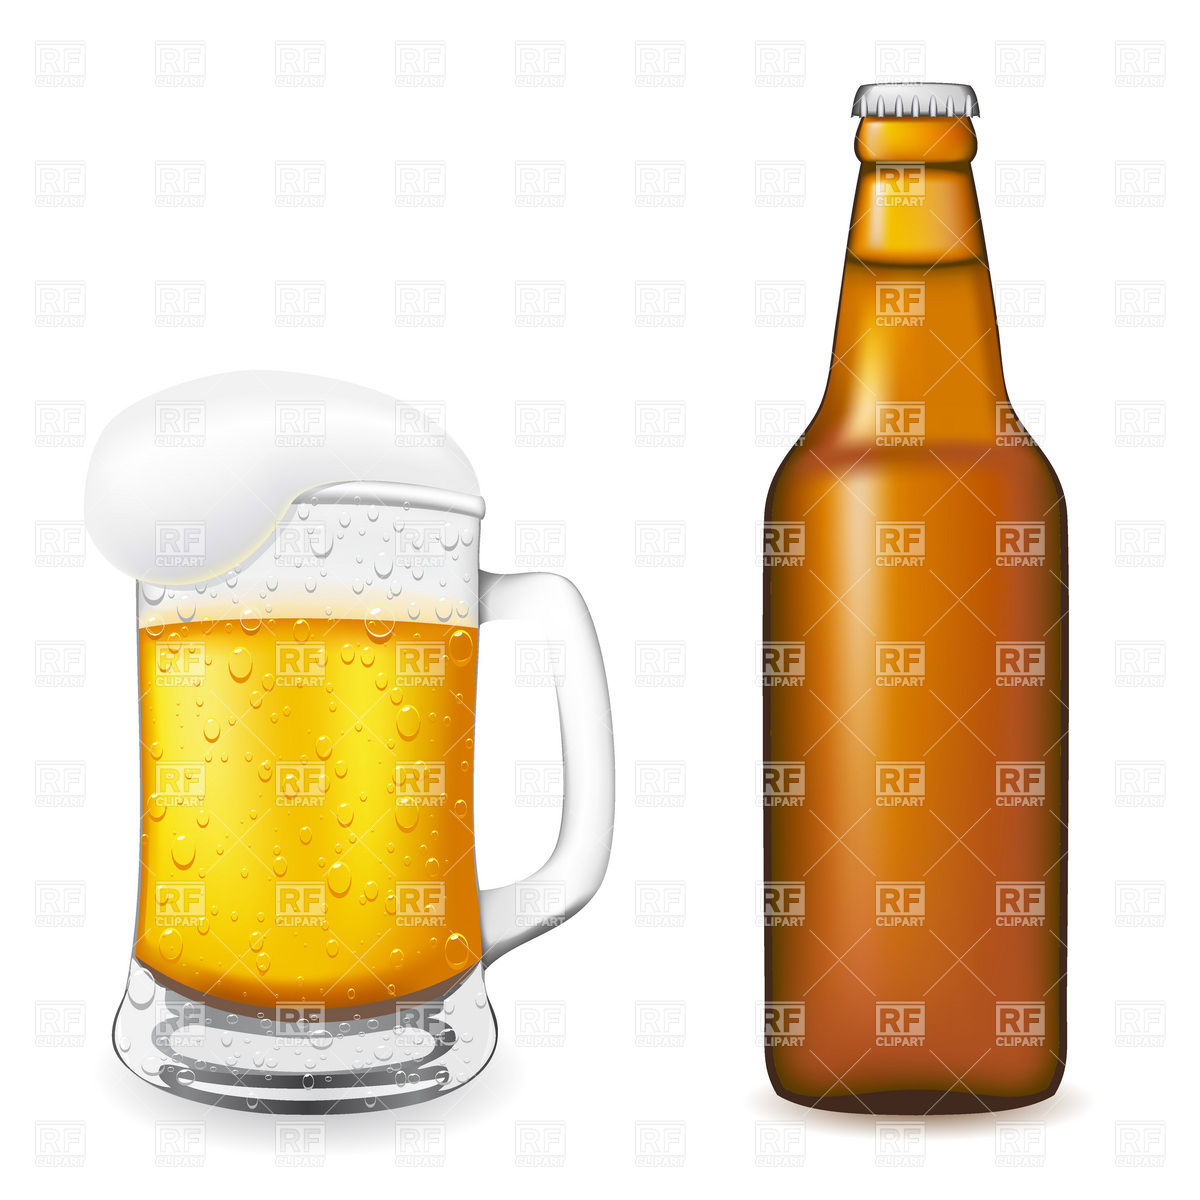 1200x1200 Brown Beer Bottle And Beer Glass With Handle And Foam Vector Image